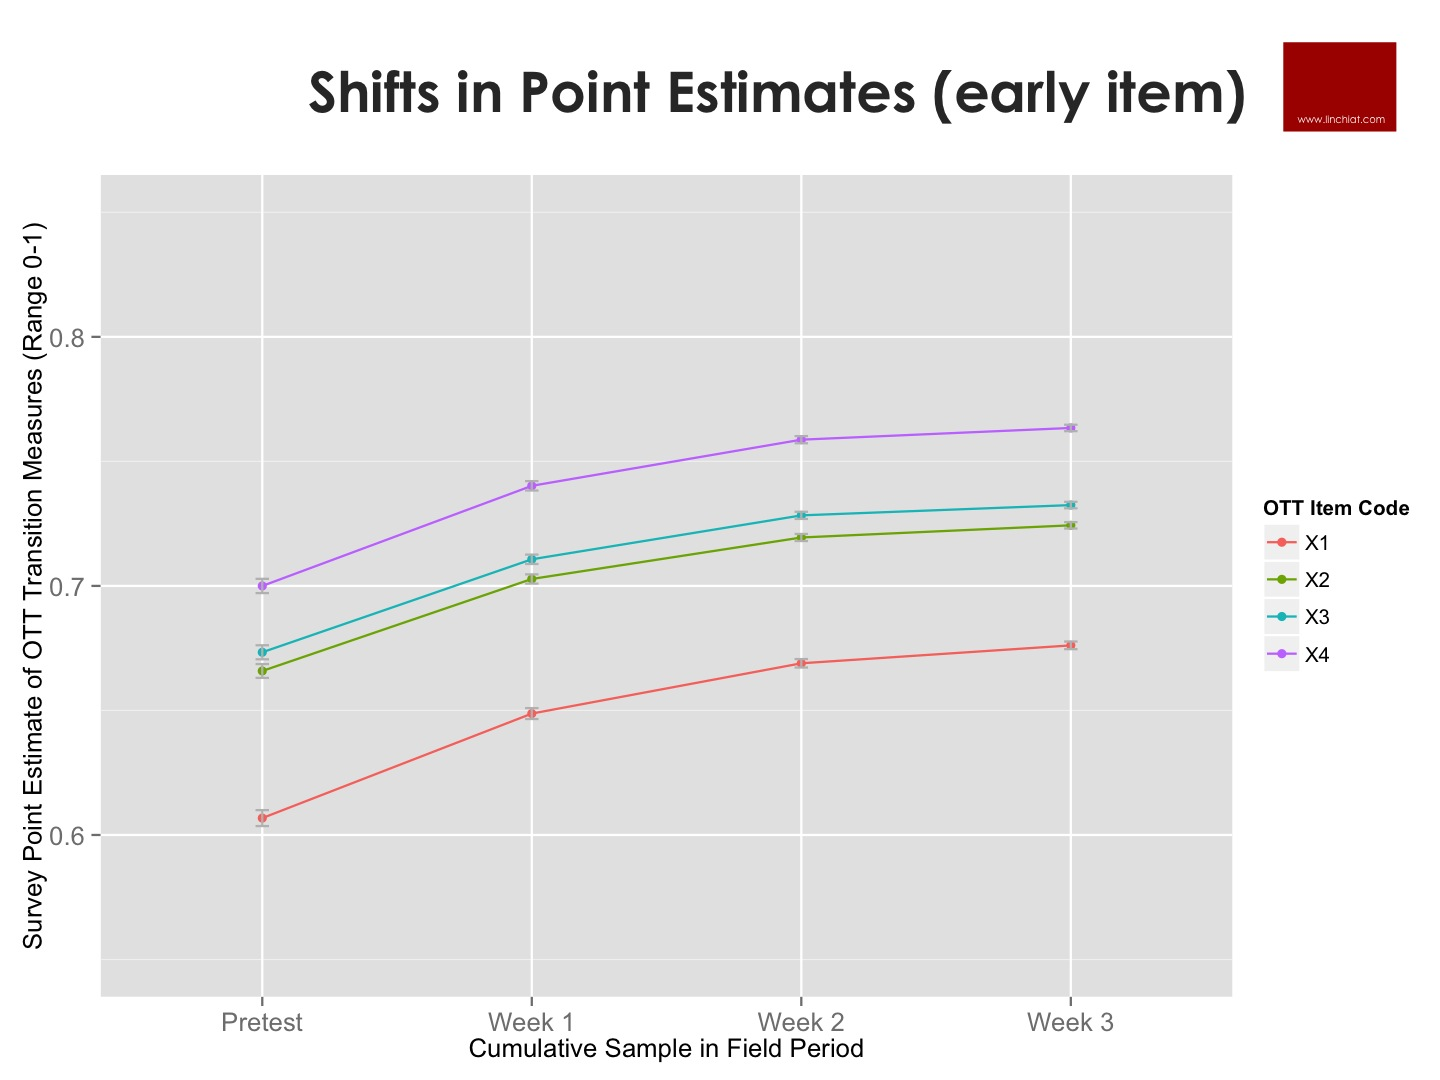 Shifts in Point Estimates - OTT measures.jpg